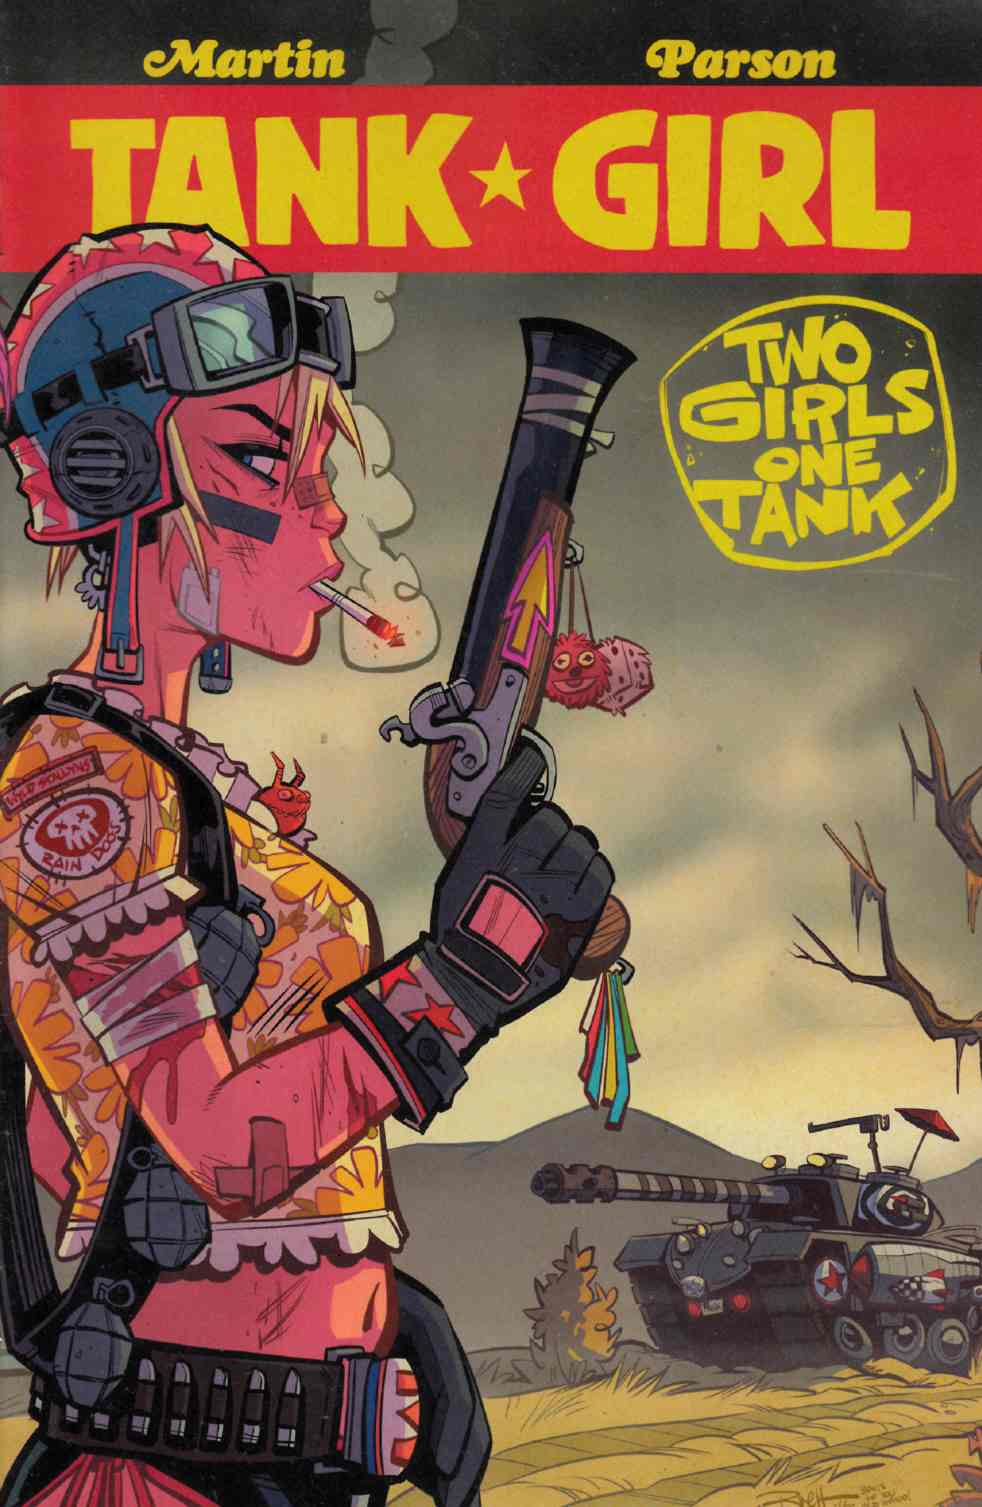 Tank Girl 2 Girls 1 Tank #4 Cover A [Titan Comic]